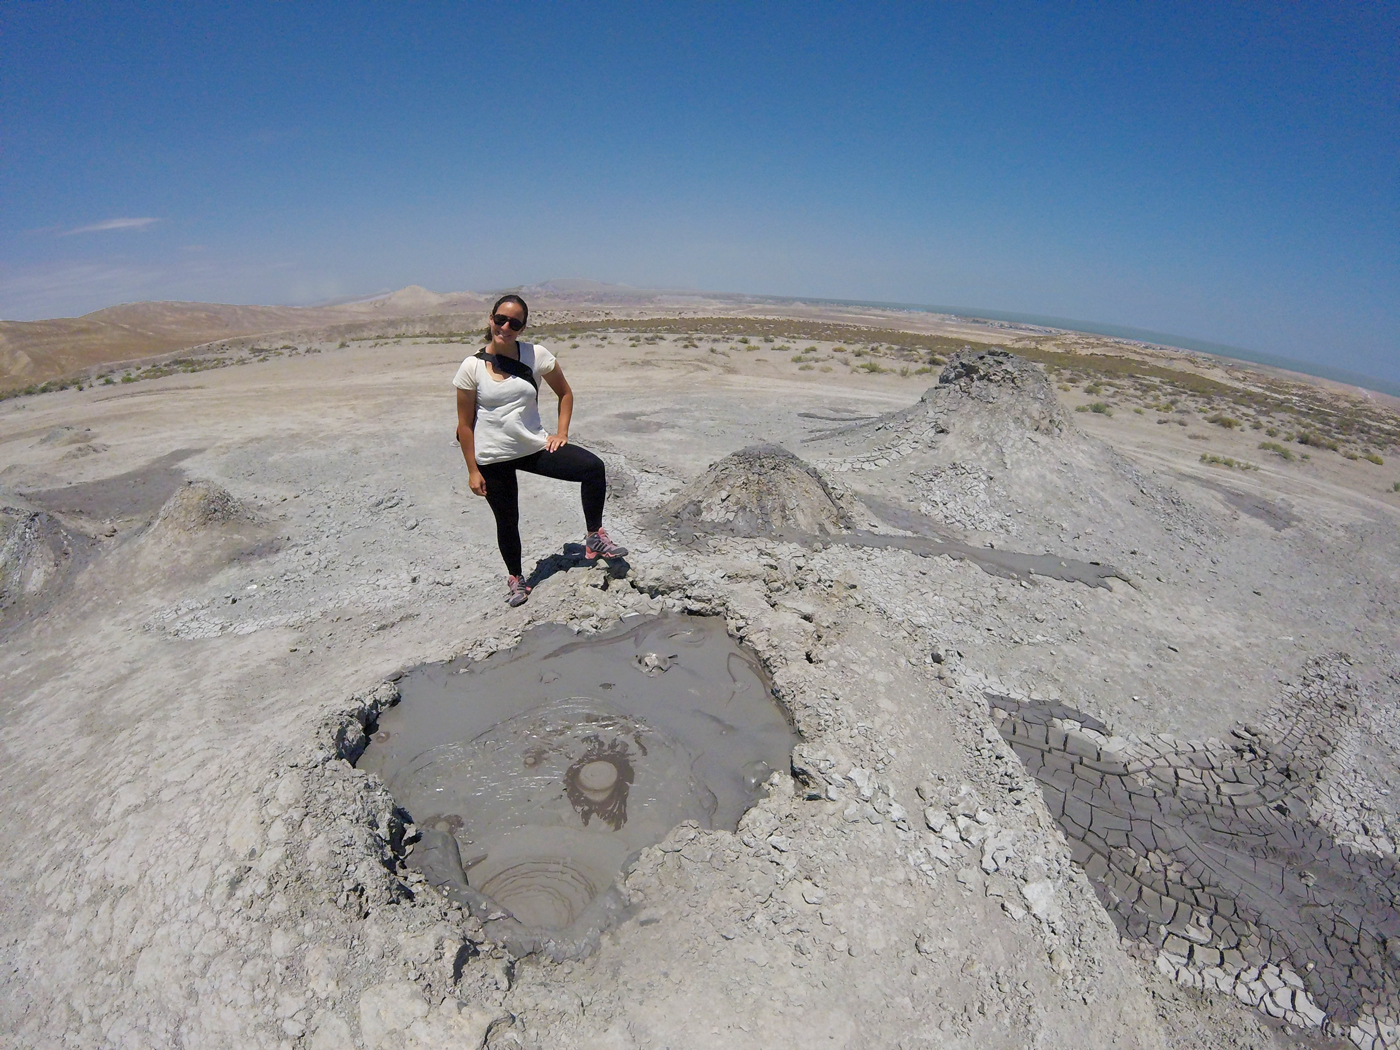 Cycling, Azerbaijan Cycling, crossing the Caucasus region by bicycle, Gobustan mud volcano. Cycling travel, biketouring, cycling Caucasus, cycling Azerbaijan, Gobustan Mud Volcano.